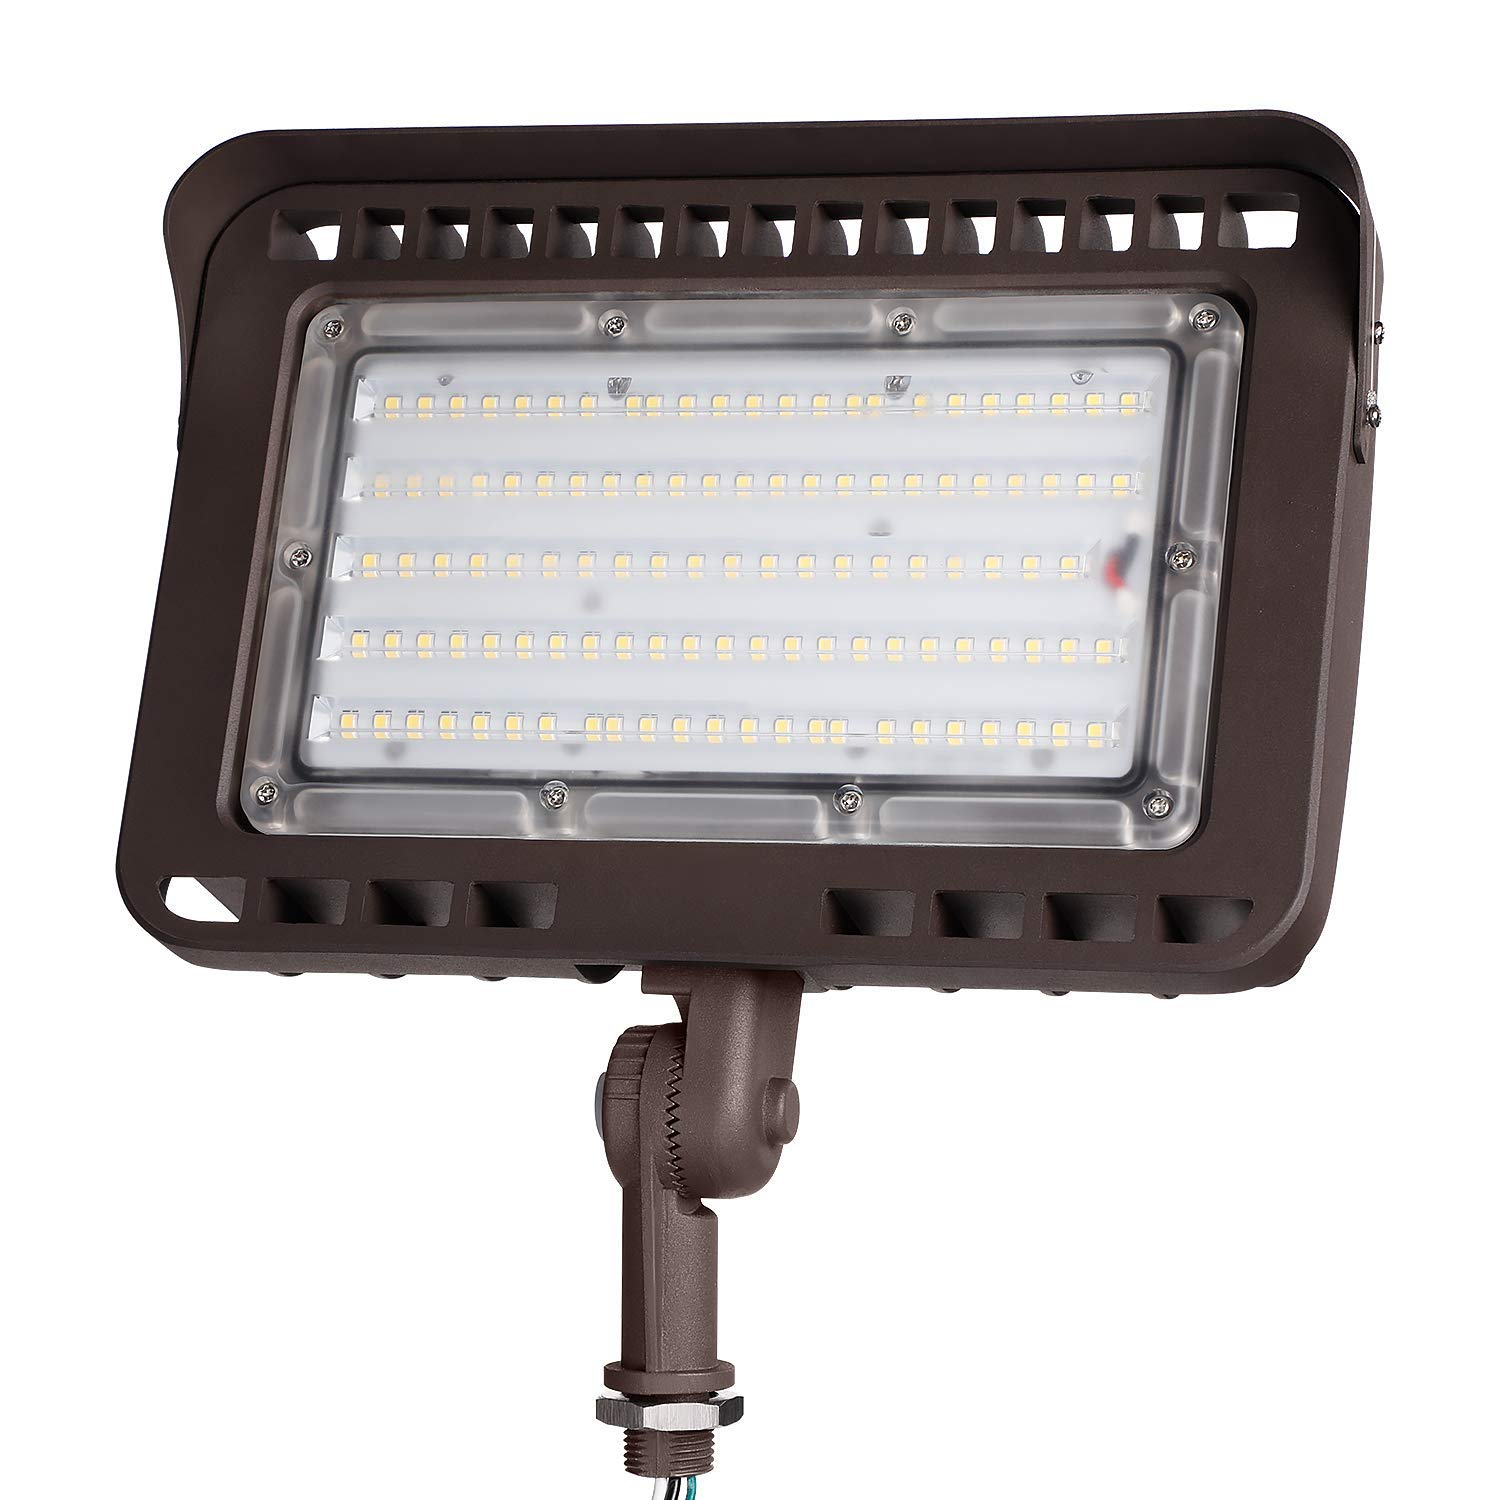 LEONLITE LED Outdoor Flood Light with Knuckle Mount, 100W (1000W Eqv.) 11,000lm Super Bright Wall Washer Security Light, CRI90+, IP65 Waterproof, 5000K Daylight, for Yard/Parking Lot/Advertising Board